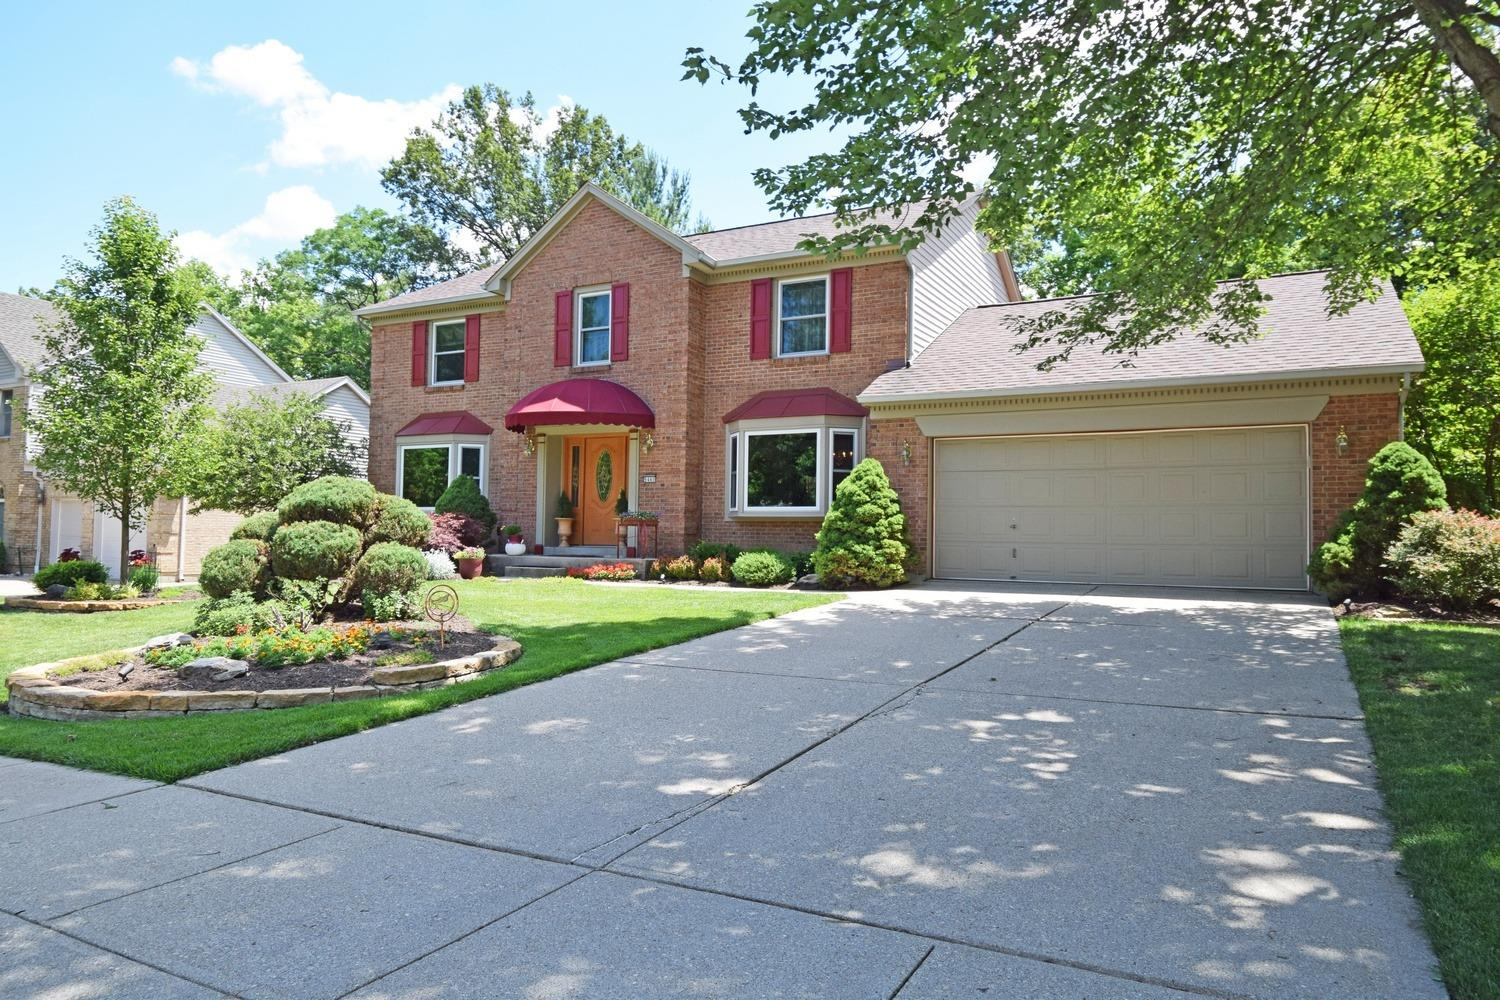 Property for sale at 9440 Meadow Trail, Deerfield Twp.,  Ohio 45140